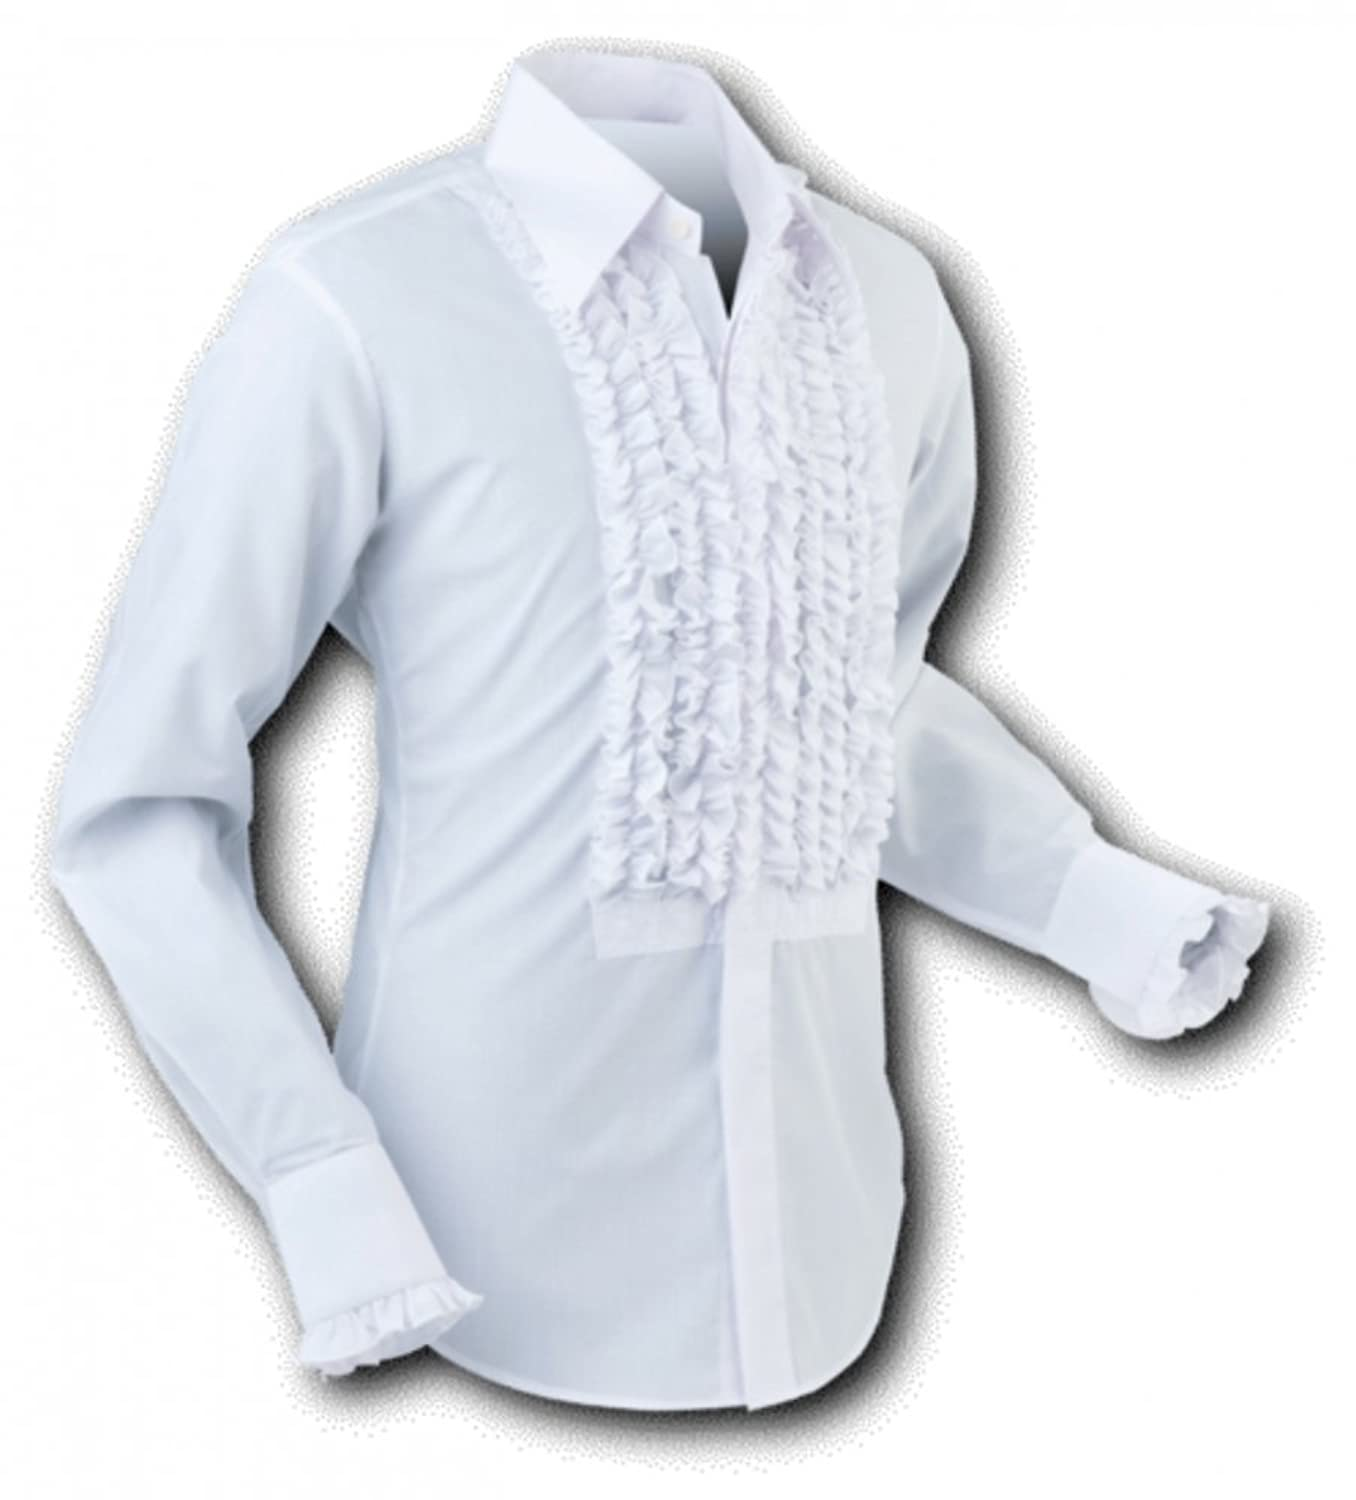 1960s Inspired Fashion: Recreate the Look 70s retro frilled shirt white-white £39.90 AT vintagedancer.com